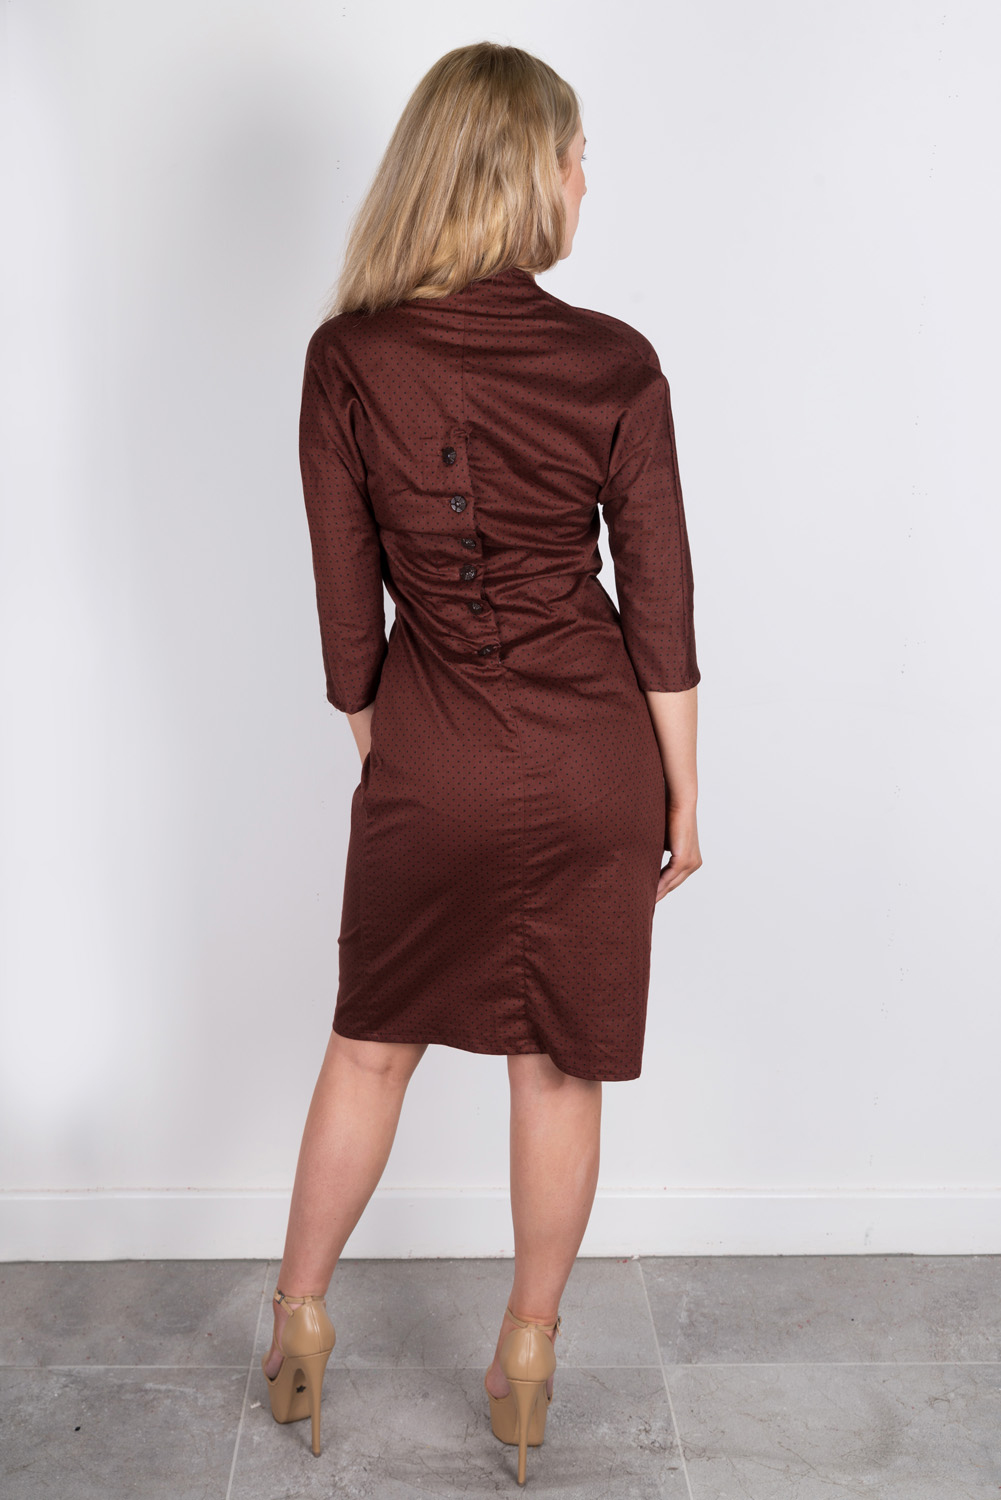 Wiggle dress with gathered bra piece, high waist, dolman sleeve and shaped collar line. Button back